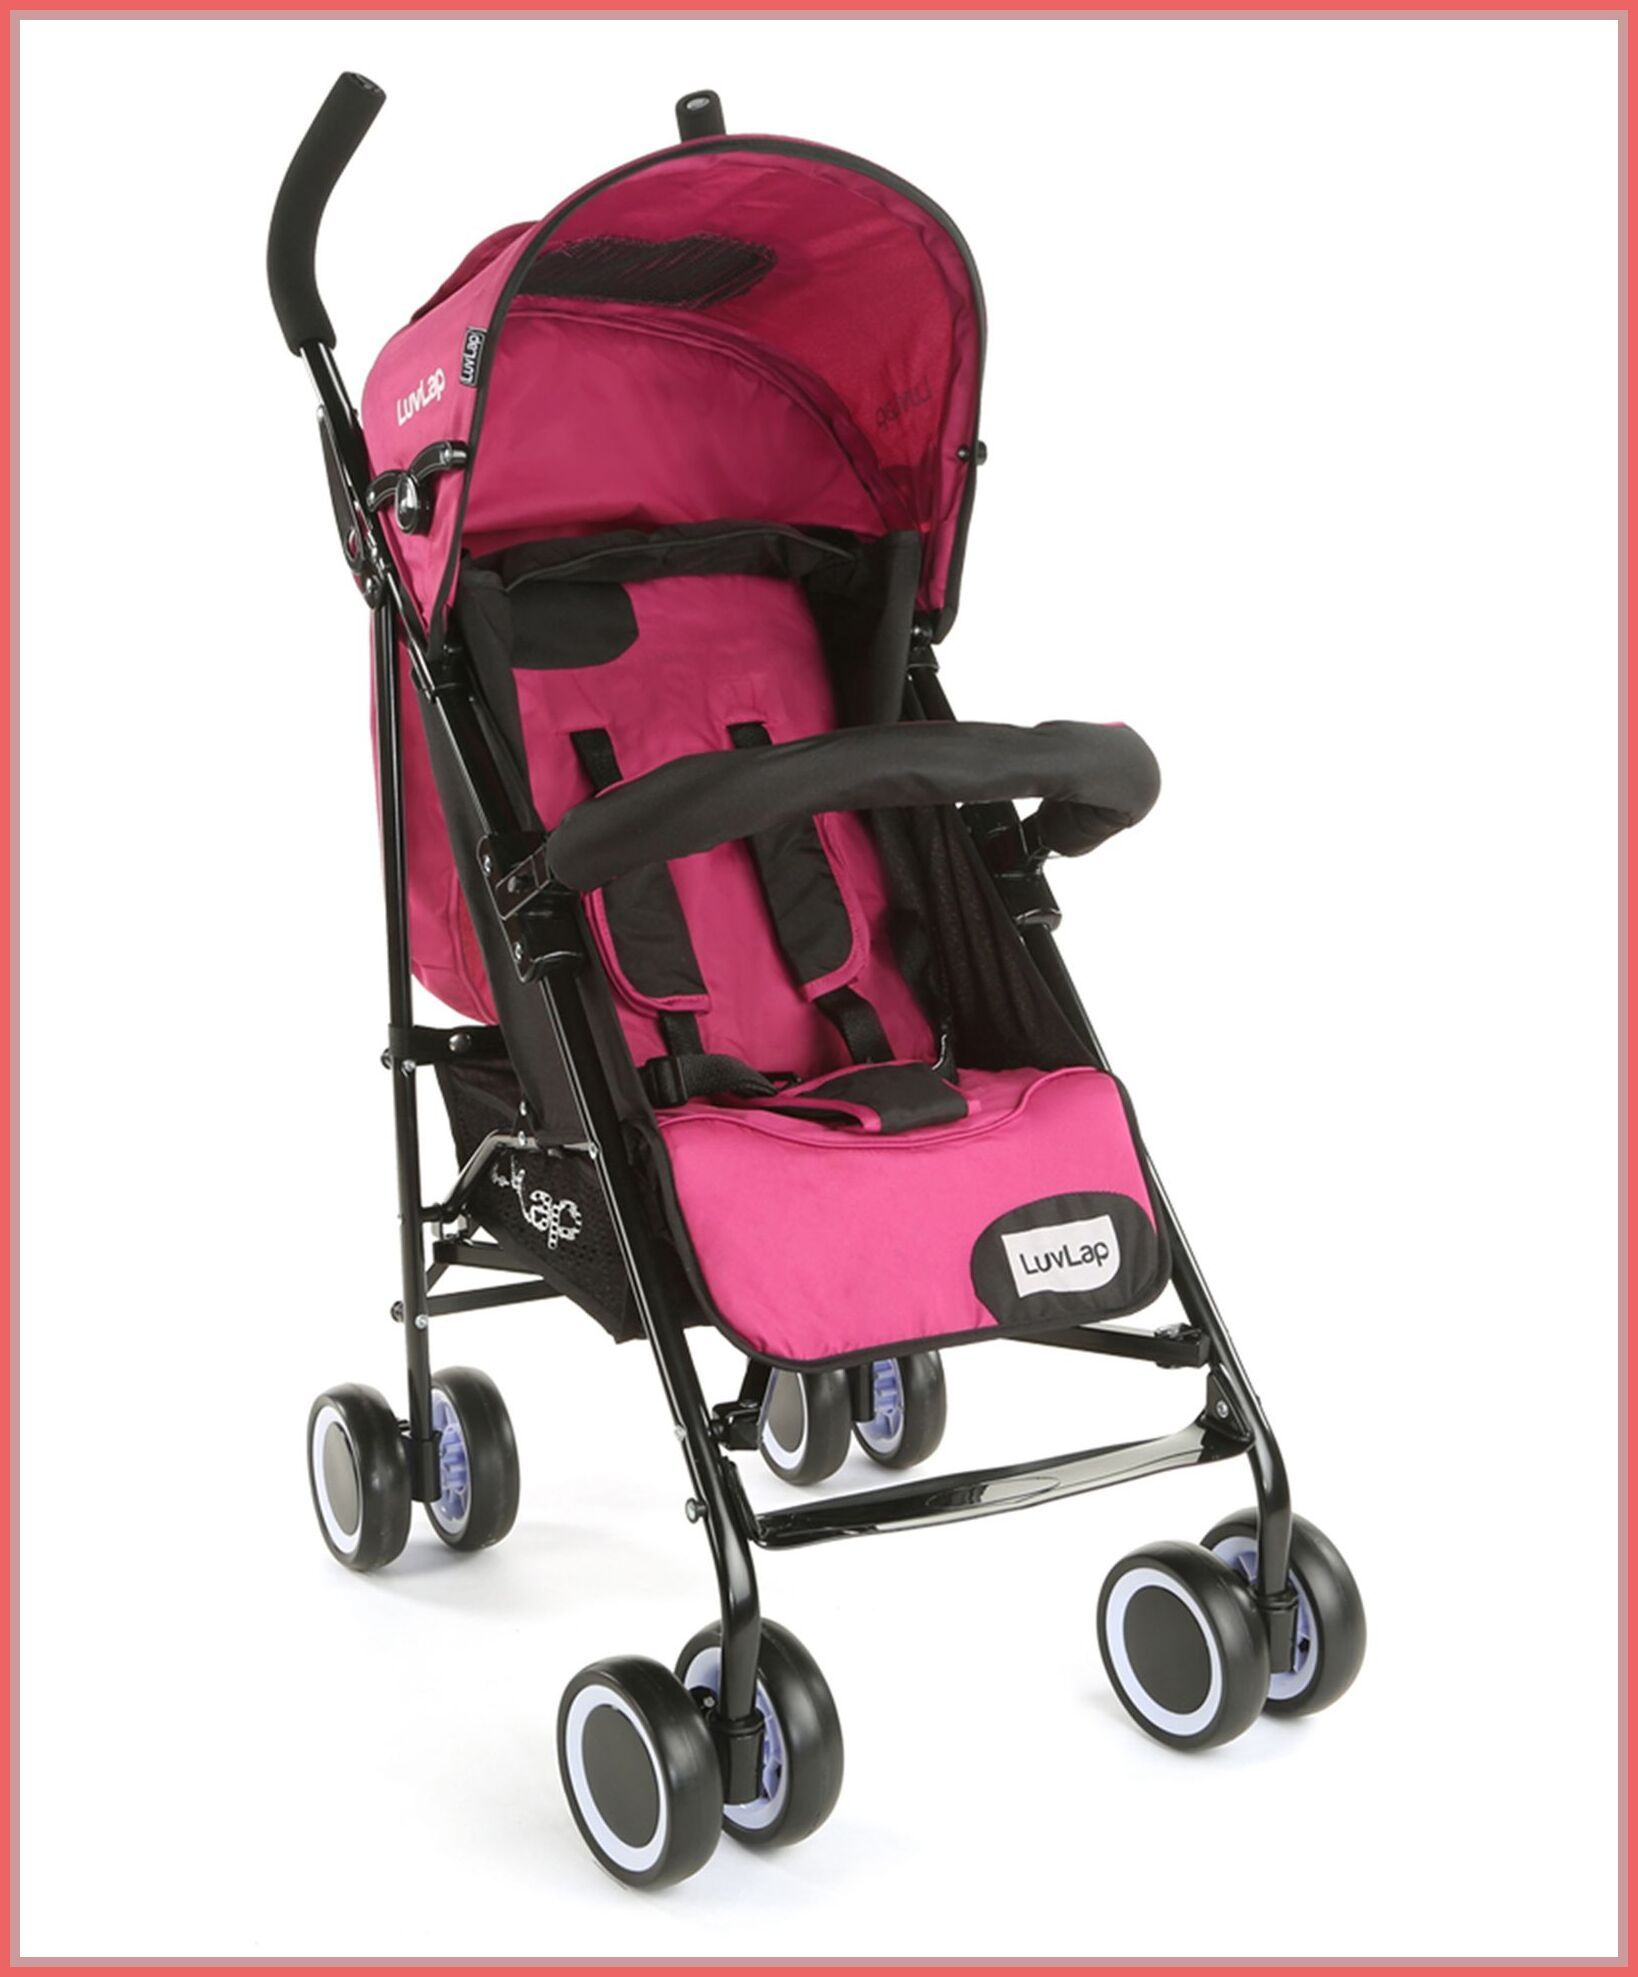 Pin on joie stroller car seat